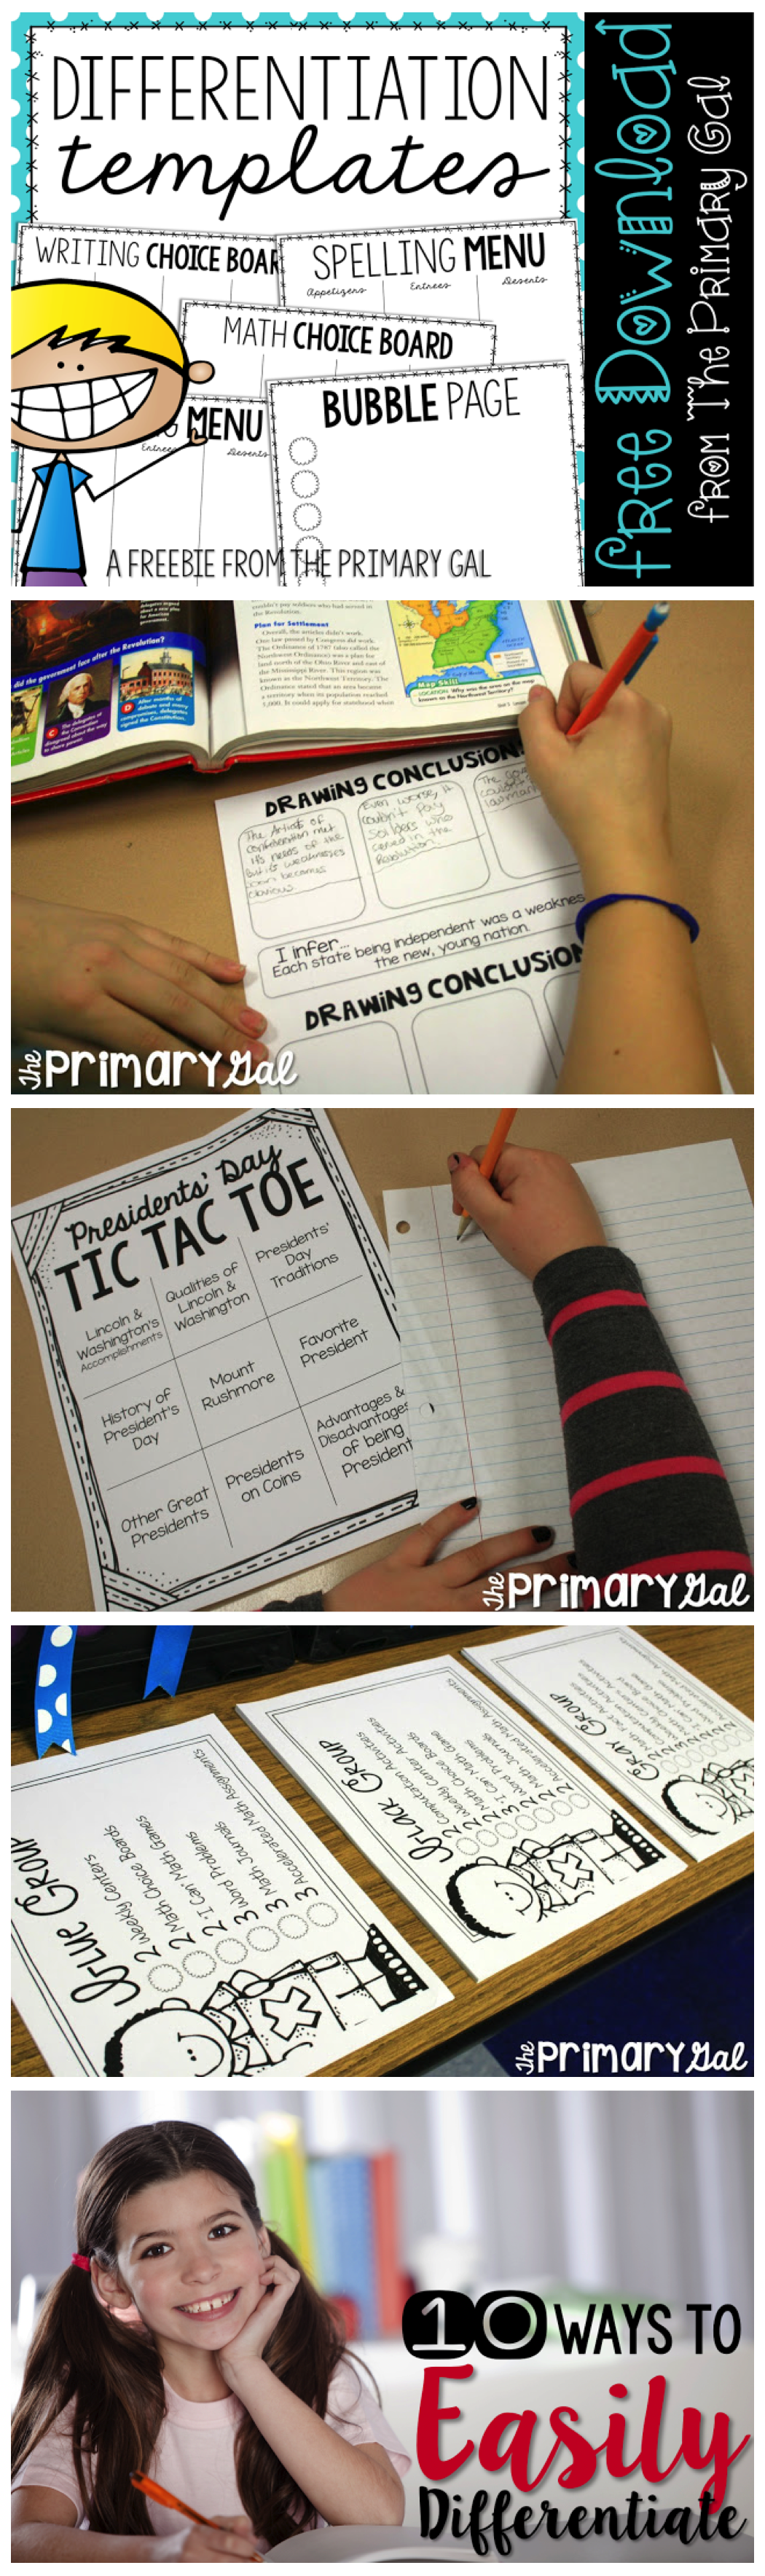 Differentiated reading instruction strategies for the primary grades